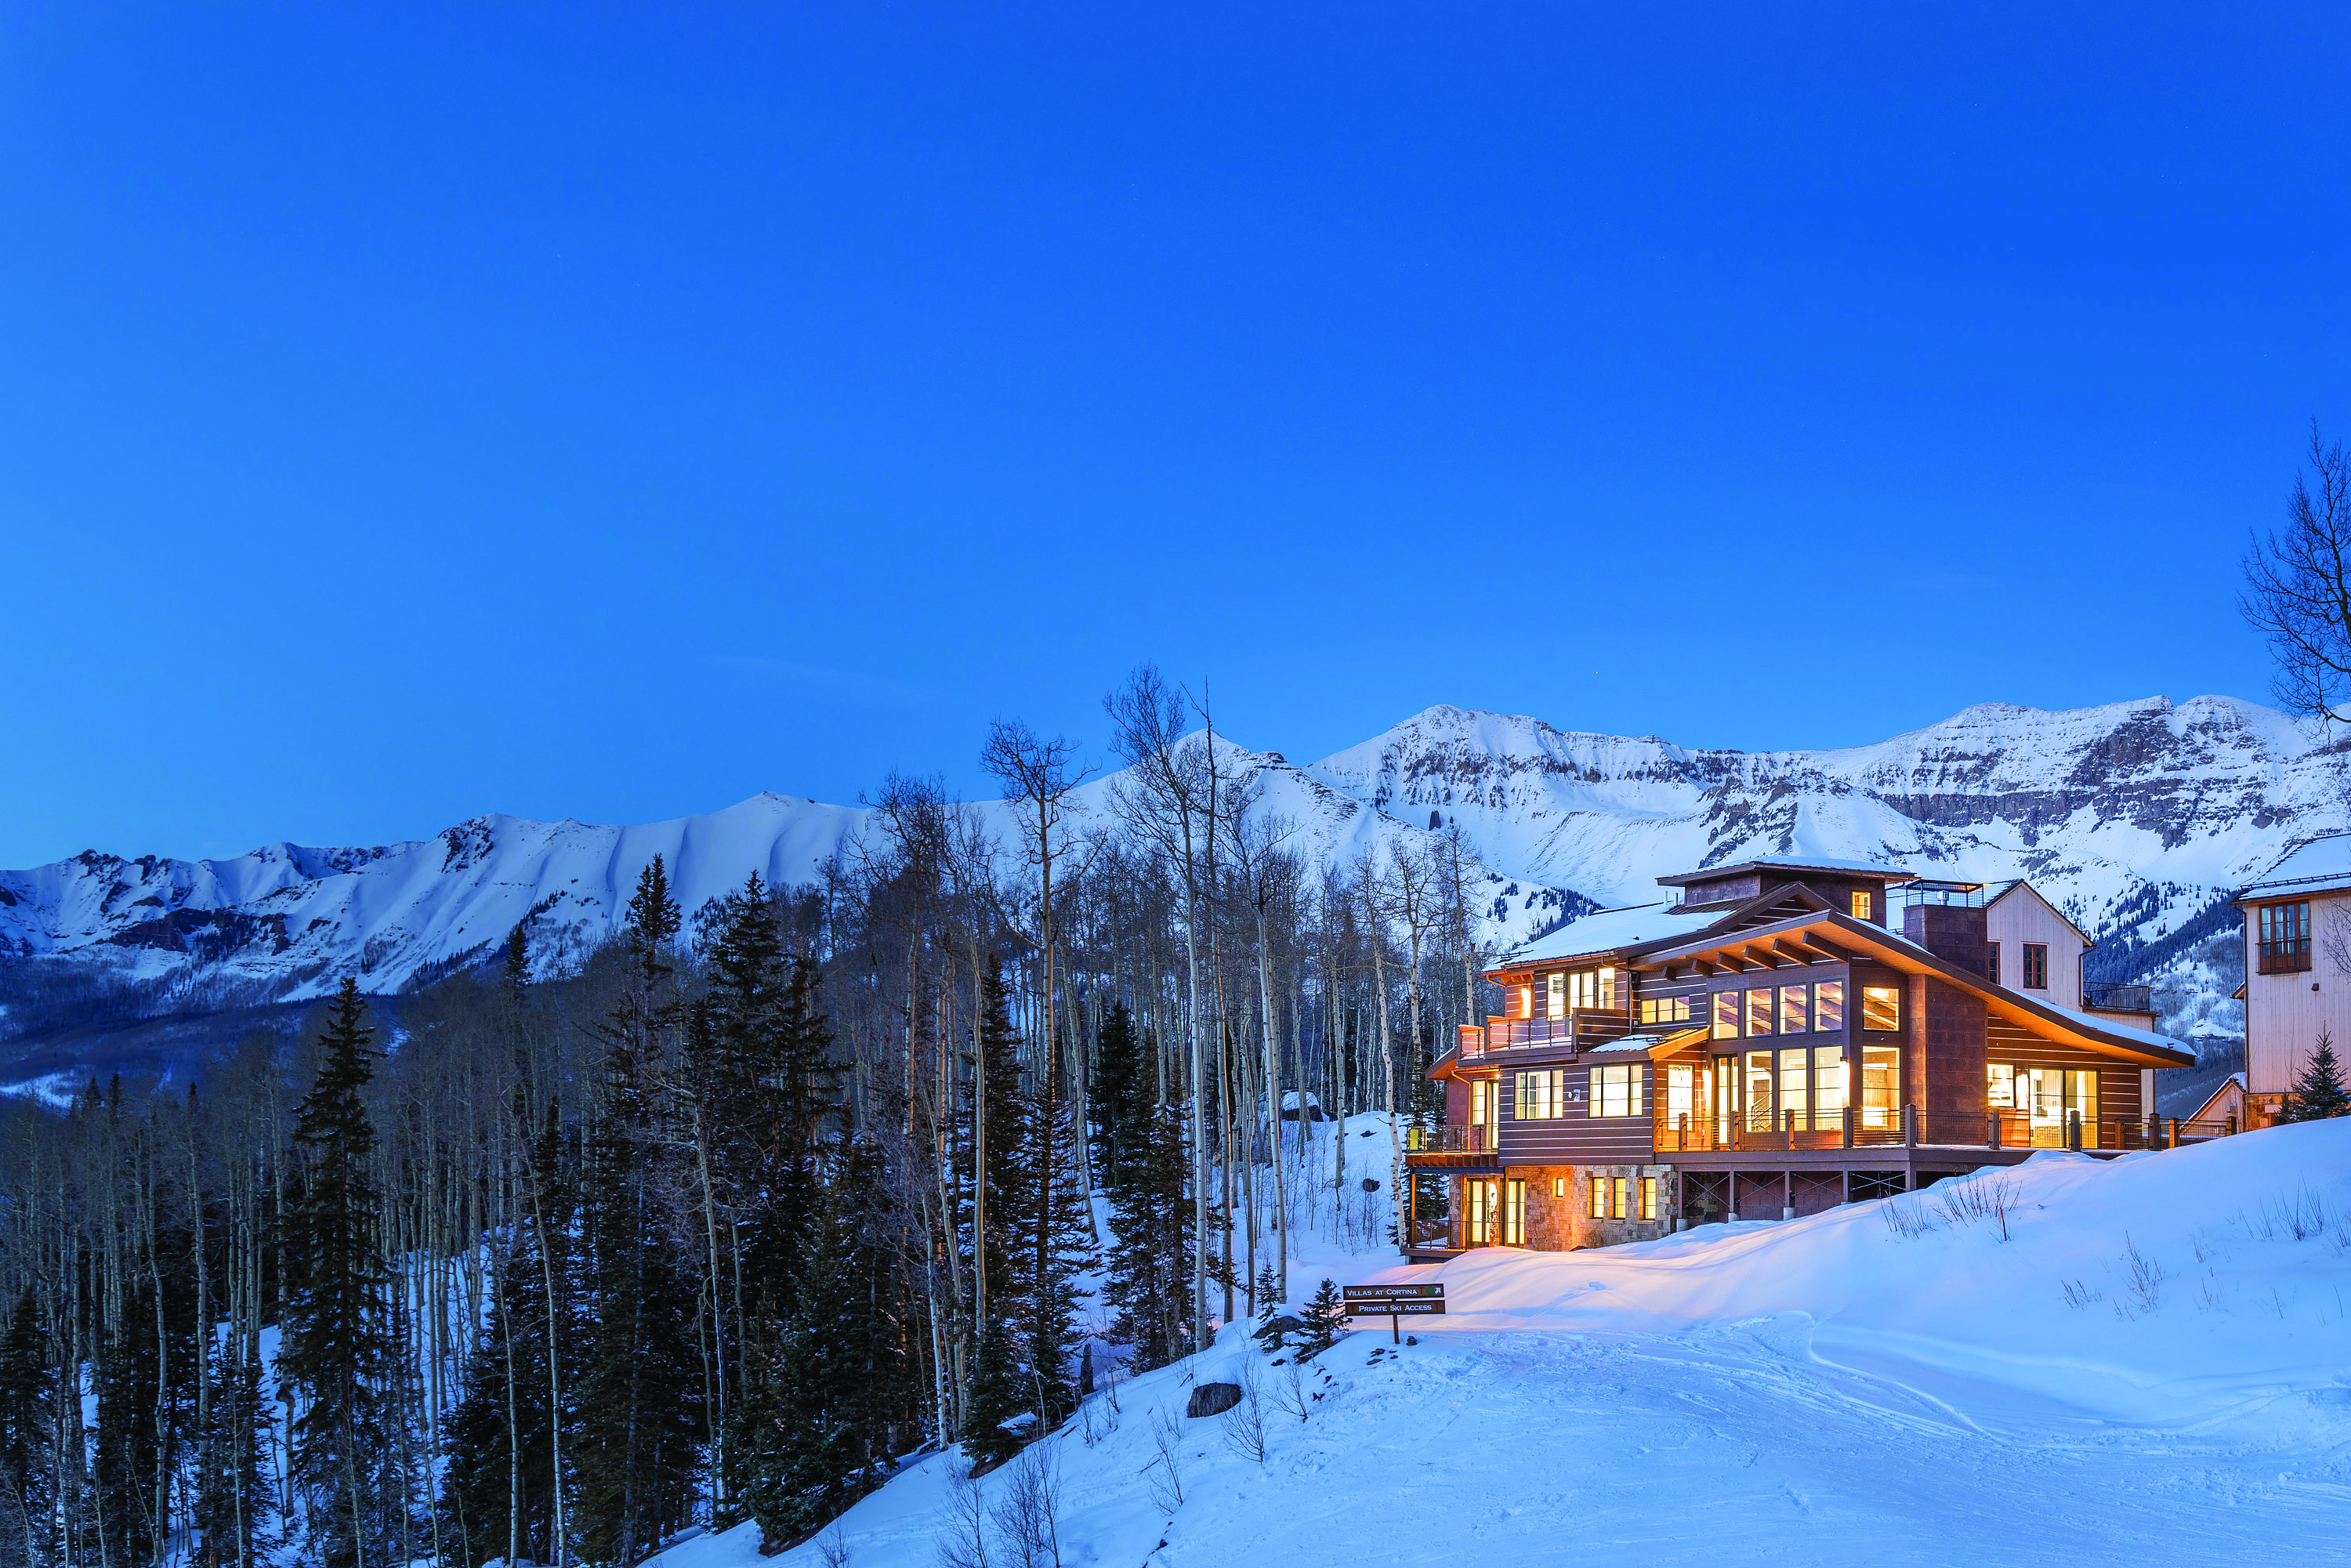 Single Family Home for Sale at 14 Cortina Drive Telluride, Colorado, 81435 United States